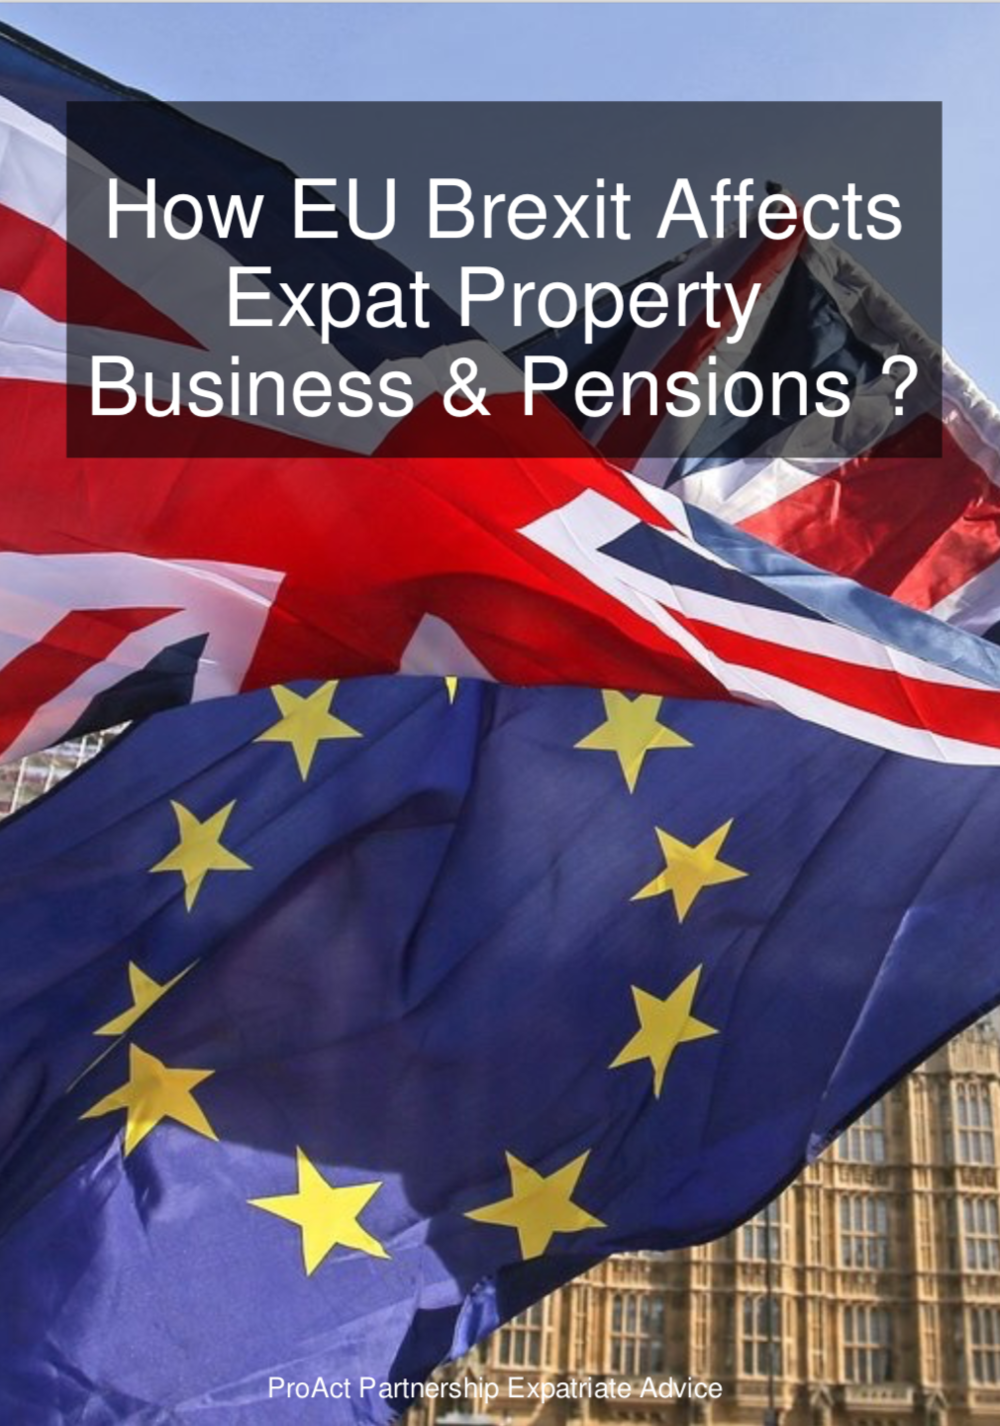 How eu brexit affects expat property, business & pensions - ProACT Sam goes into depth to discuss how EU Brexit will affect your properties, businesses & pensions.Find out about the business environment, residency rights, taxation and medical treaties, double taxation between Cyprus & the UK and its impact on your income.Including all the key dates and actions you need to take to ensure your expat life continues smoothly. Buy now for only £4.99